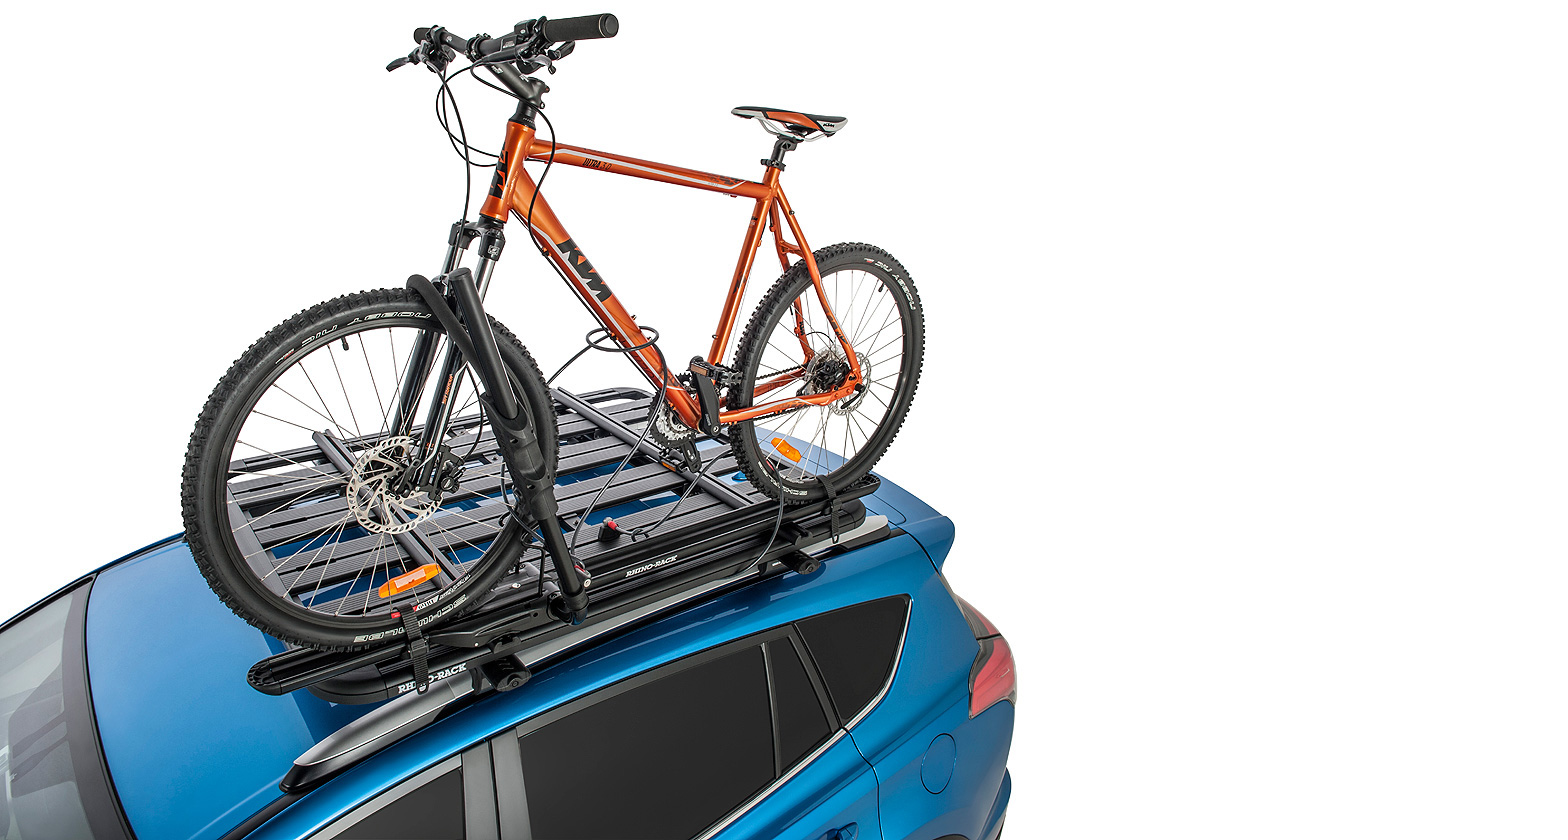 product talon s a cycling the news rack guide of weekly buyer racks bike carriers best seasucker carrier